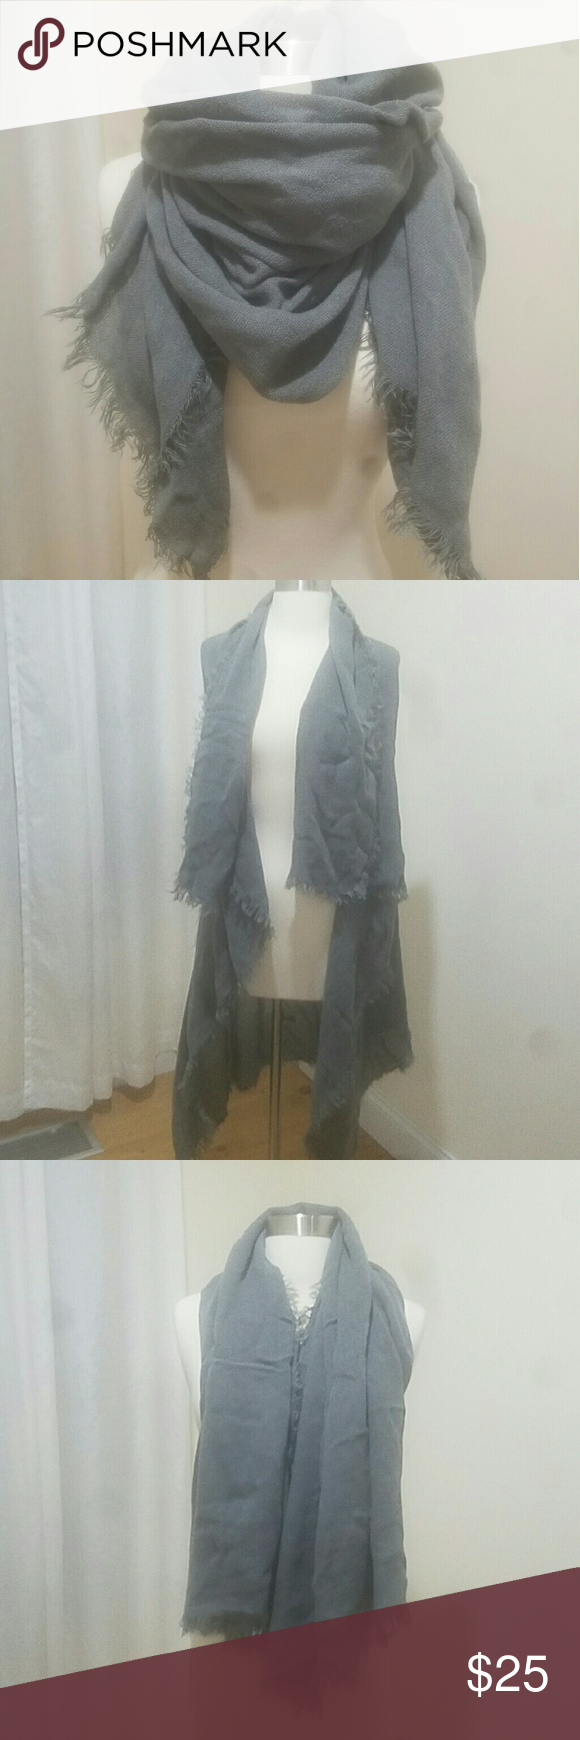 Gray blanket scarf Large oversized scarf Accessories Scarves & Wraps